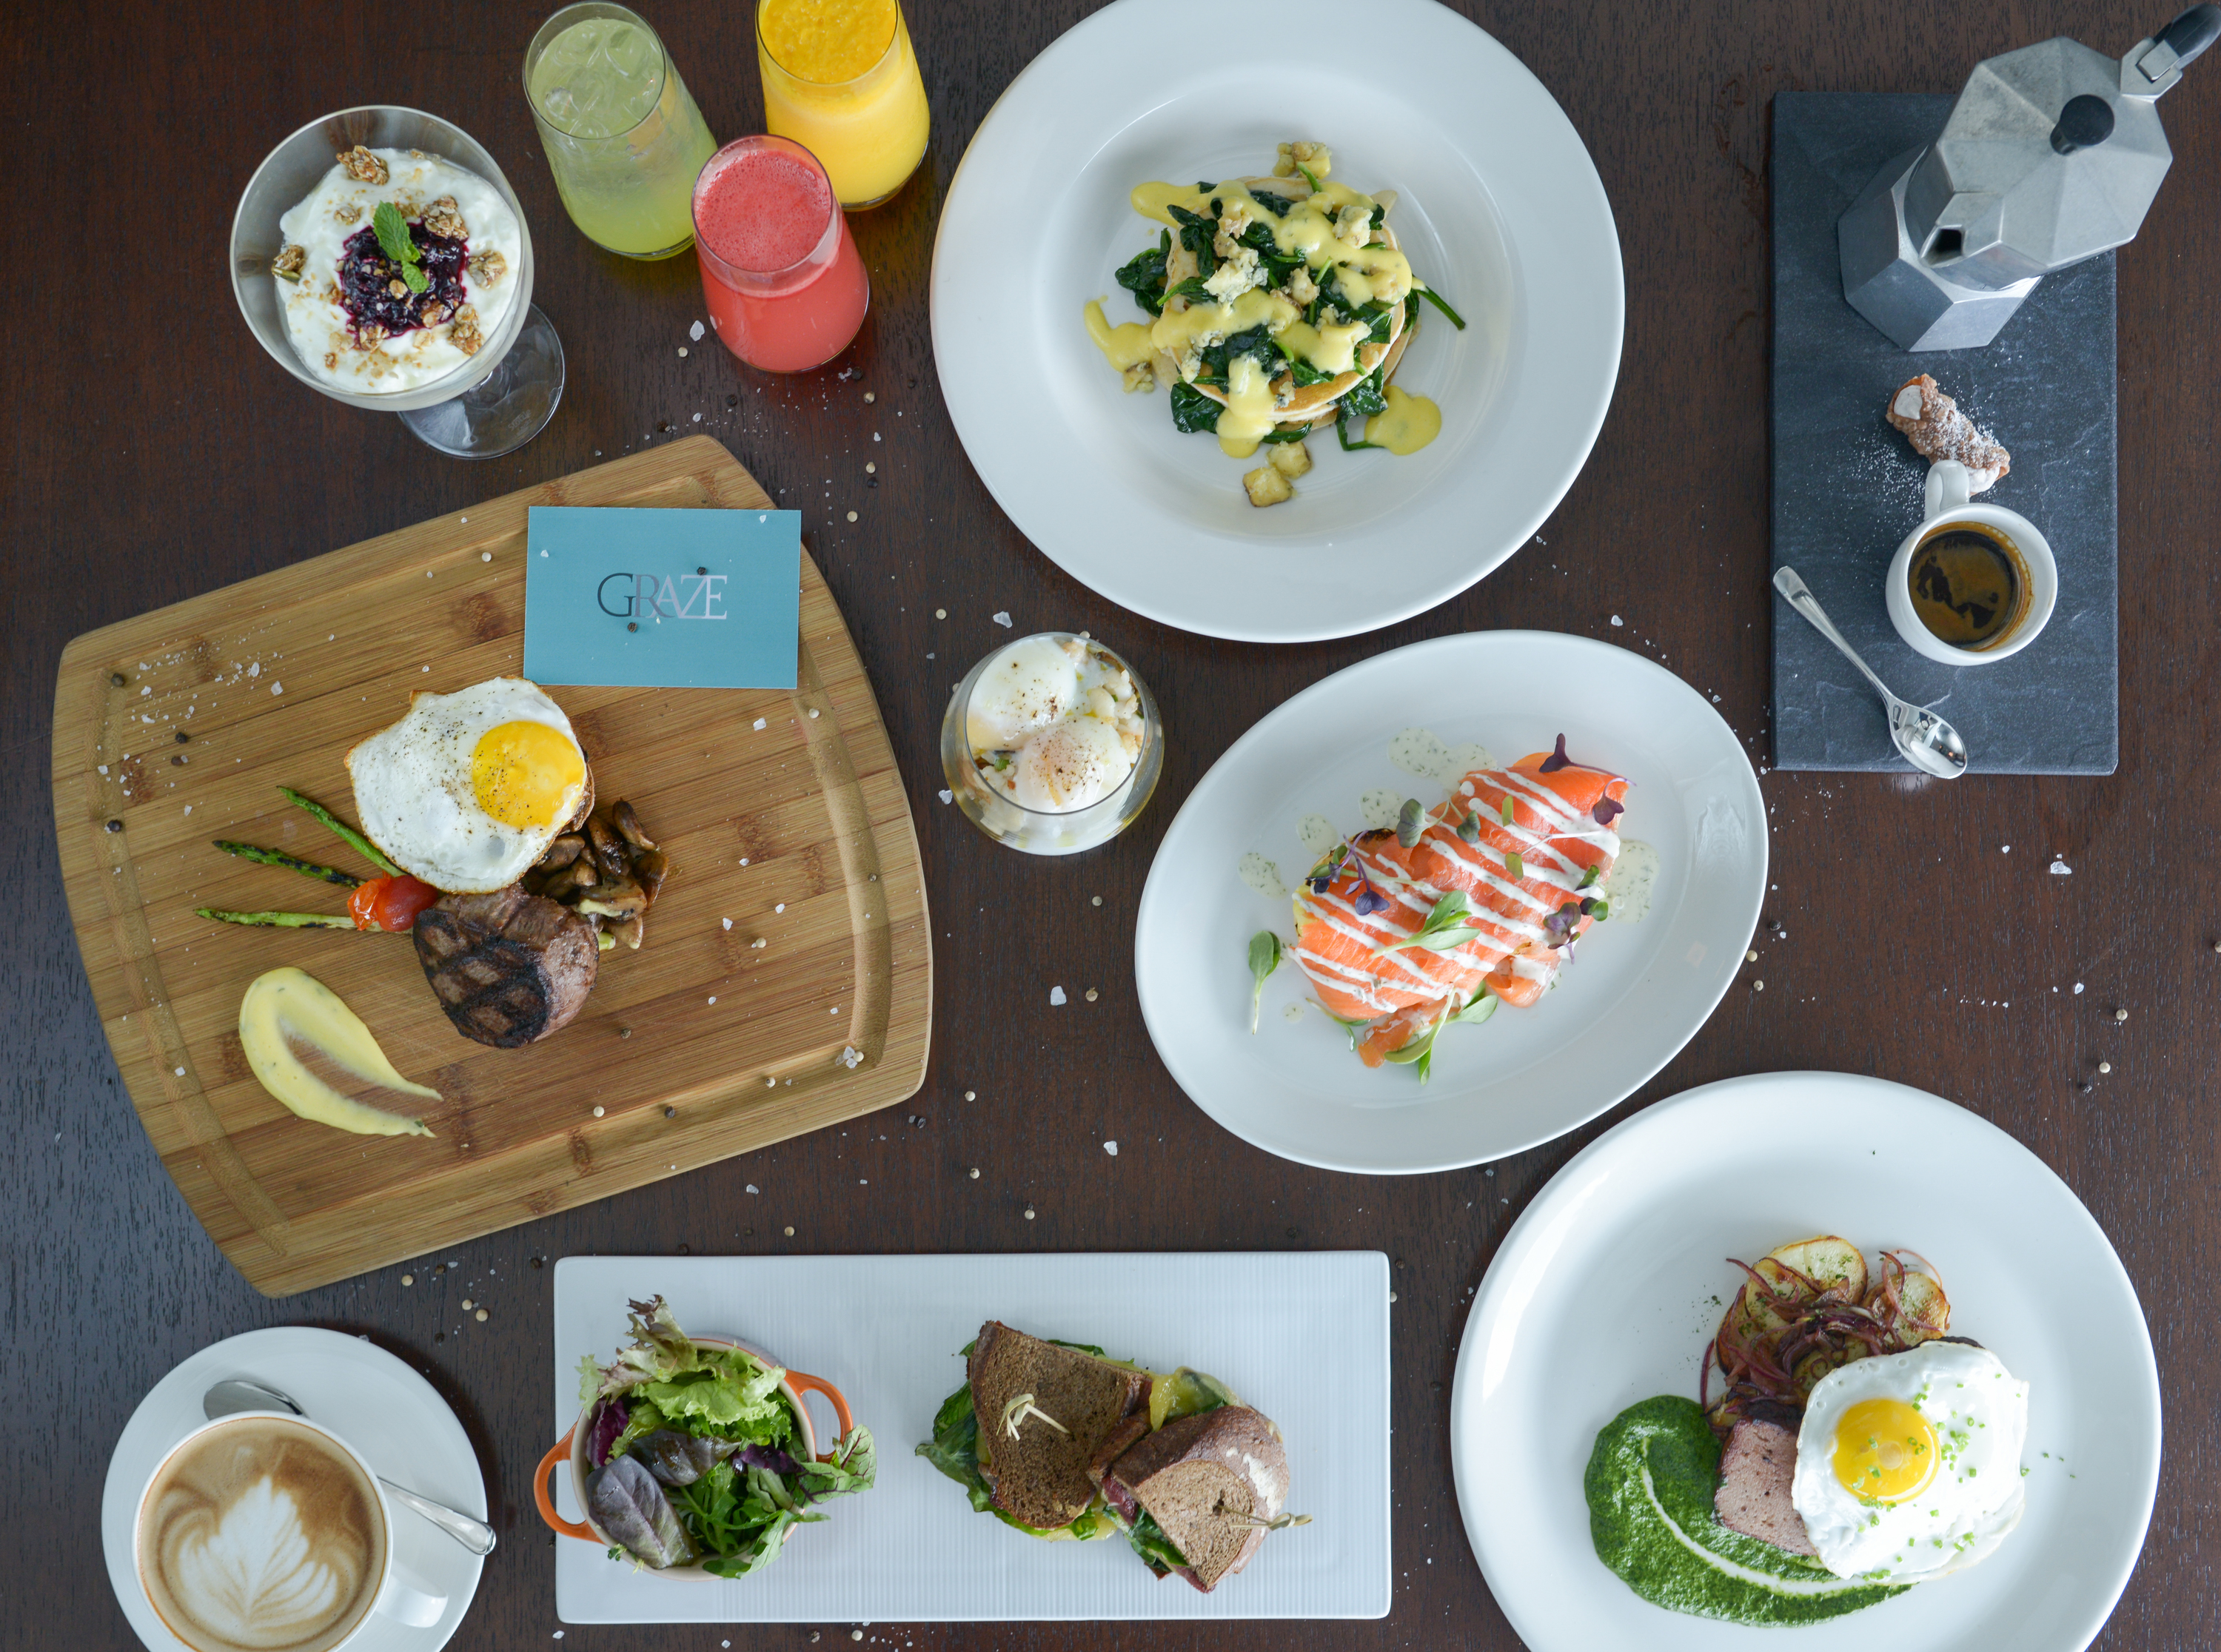 The Lazy Weekend Brunch at Graze